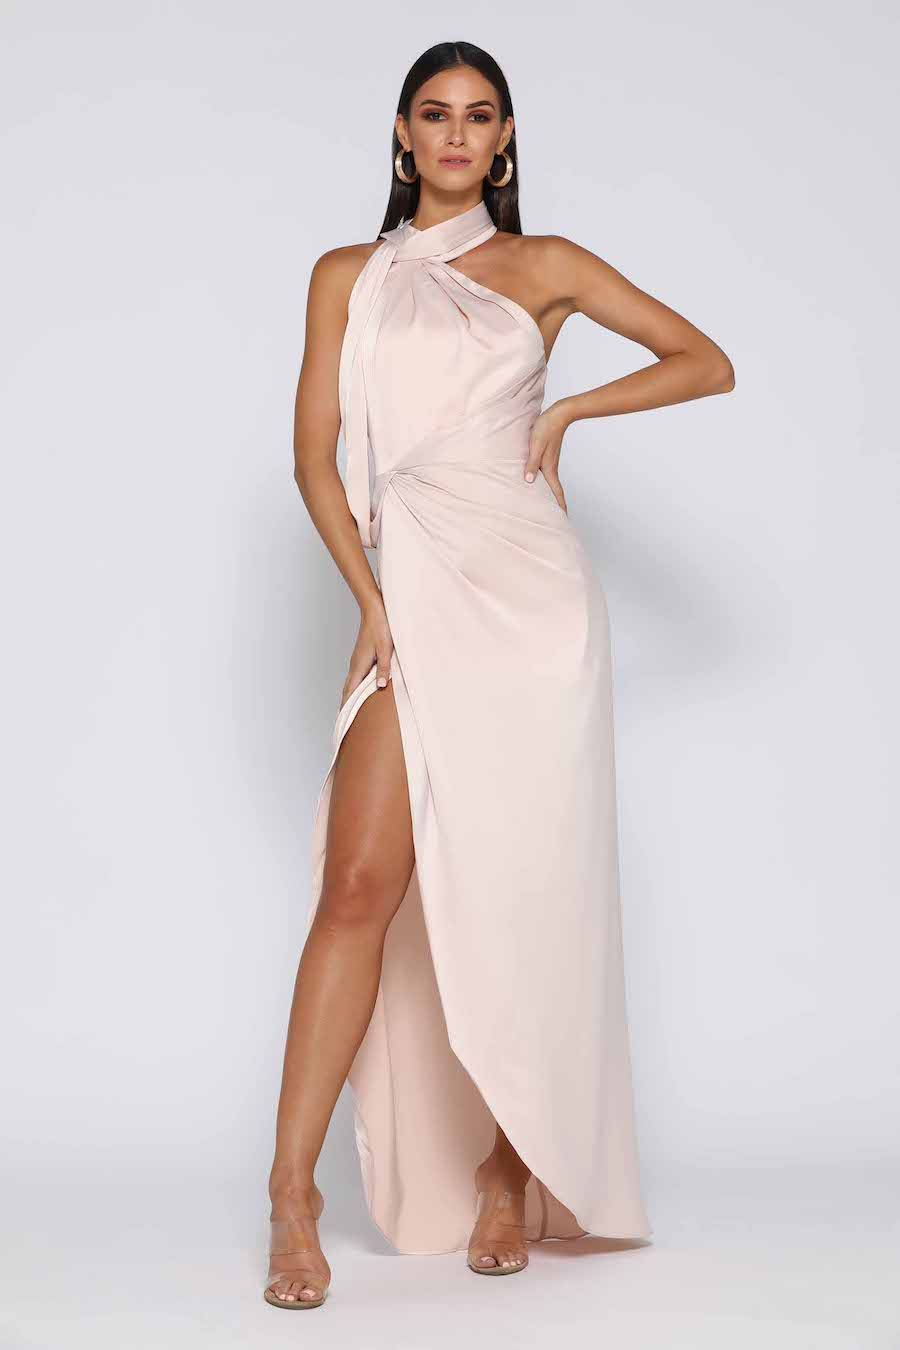 Halter Satin Sleek gown with high split